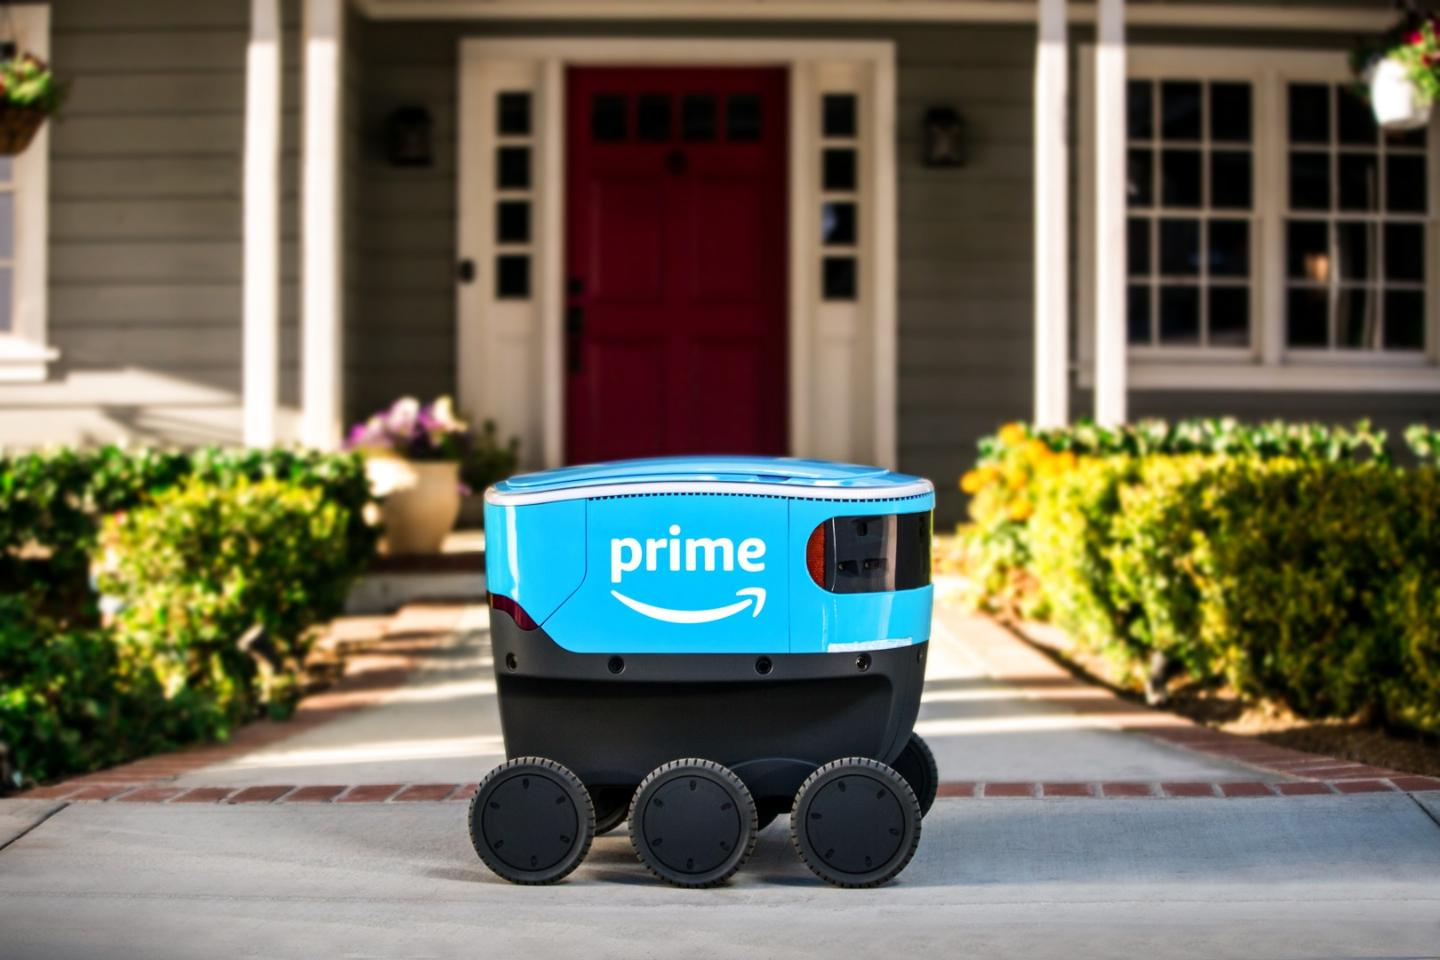 Amazon's delivery robot, named Scout